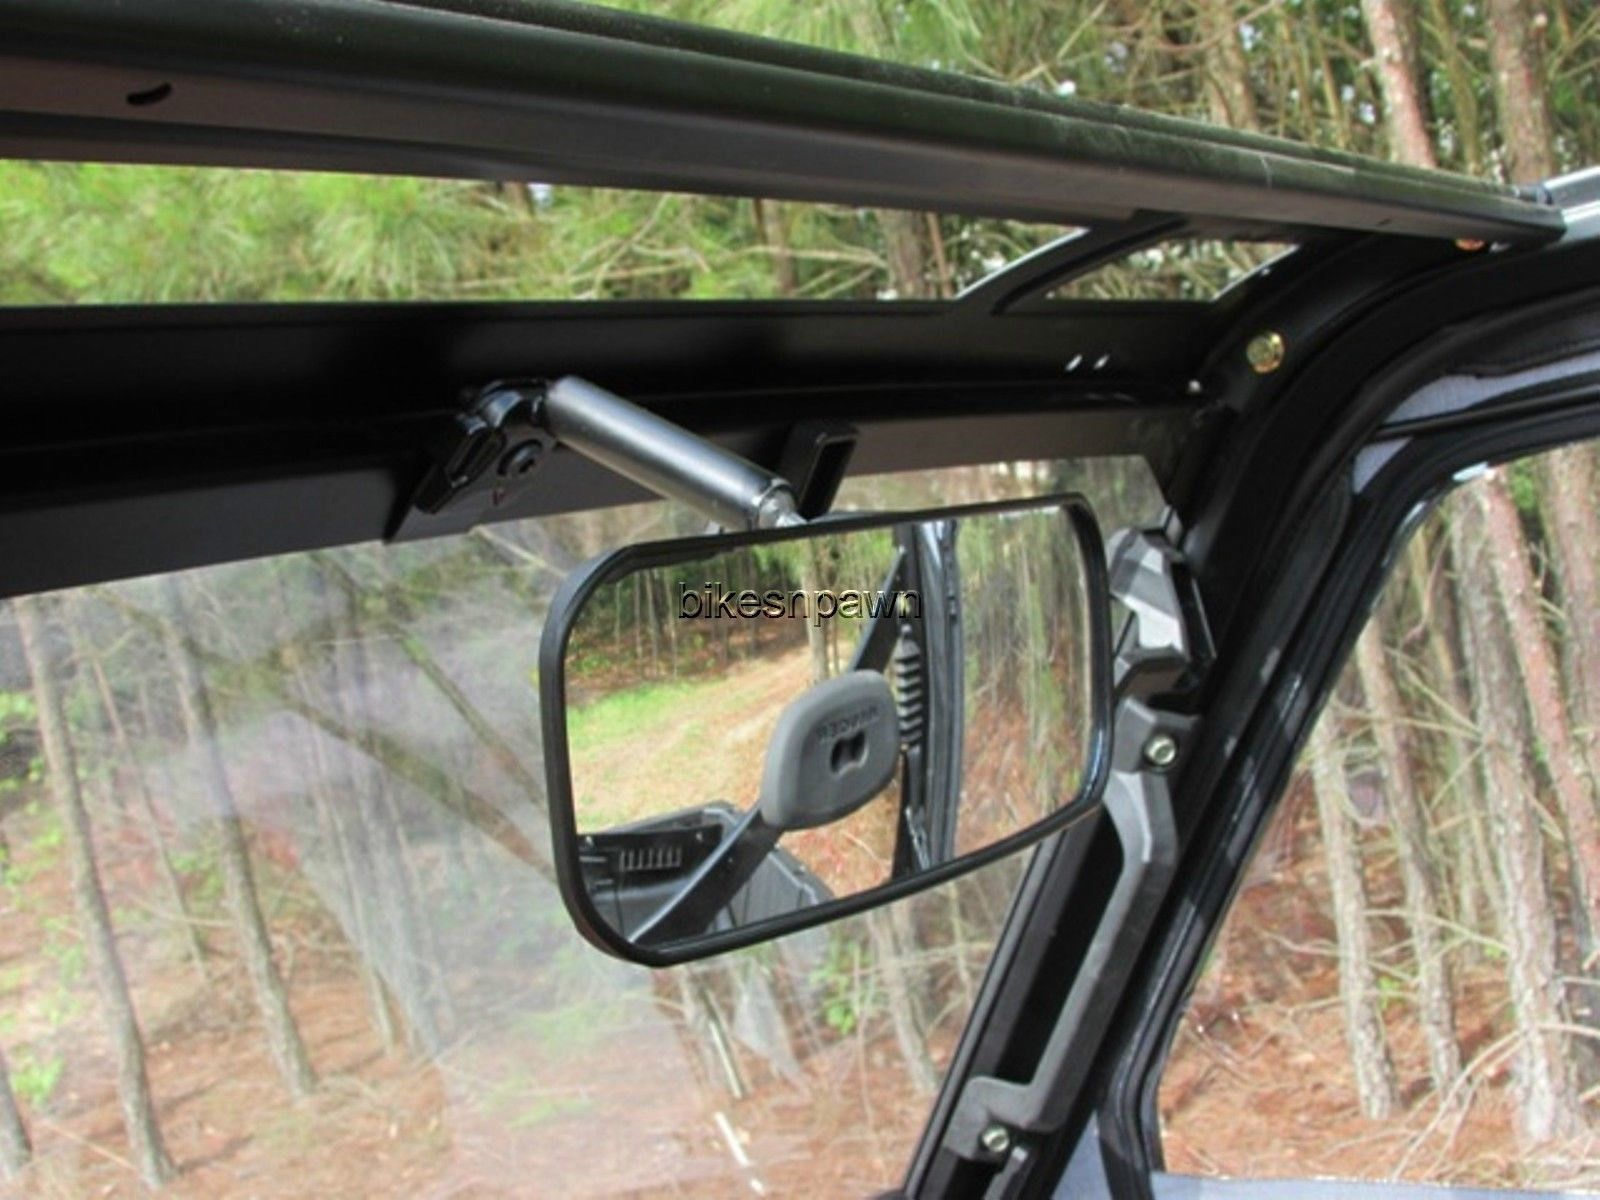 New Seizmik Inside Rear View Mirror Polaris Ranger 2011-up Pro Fit